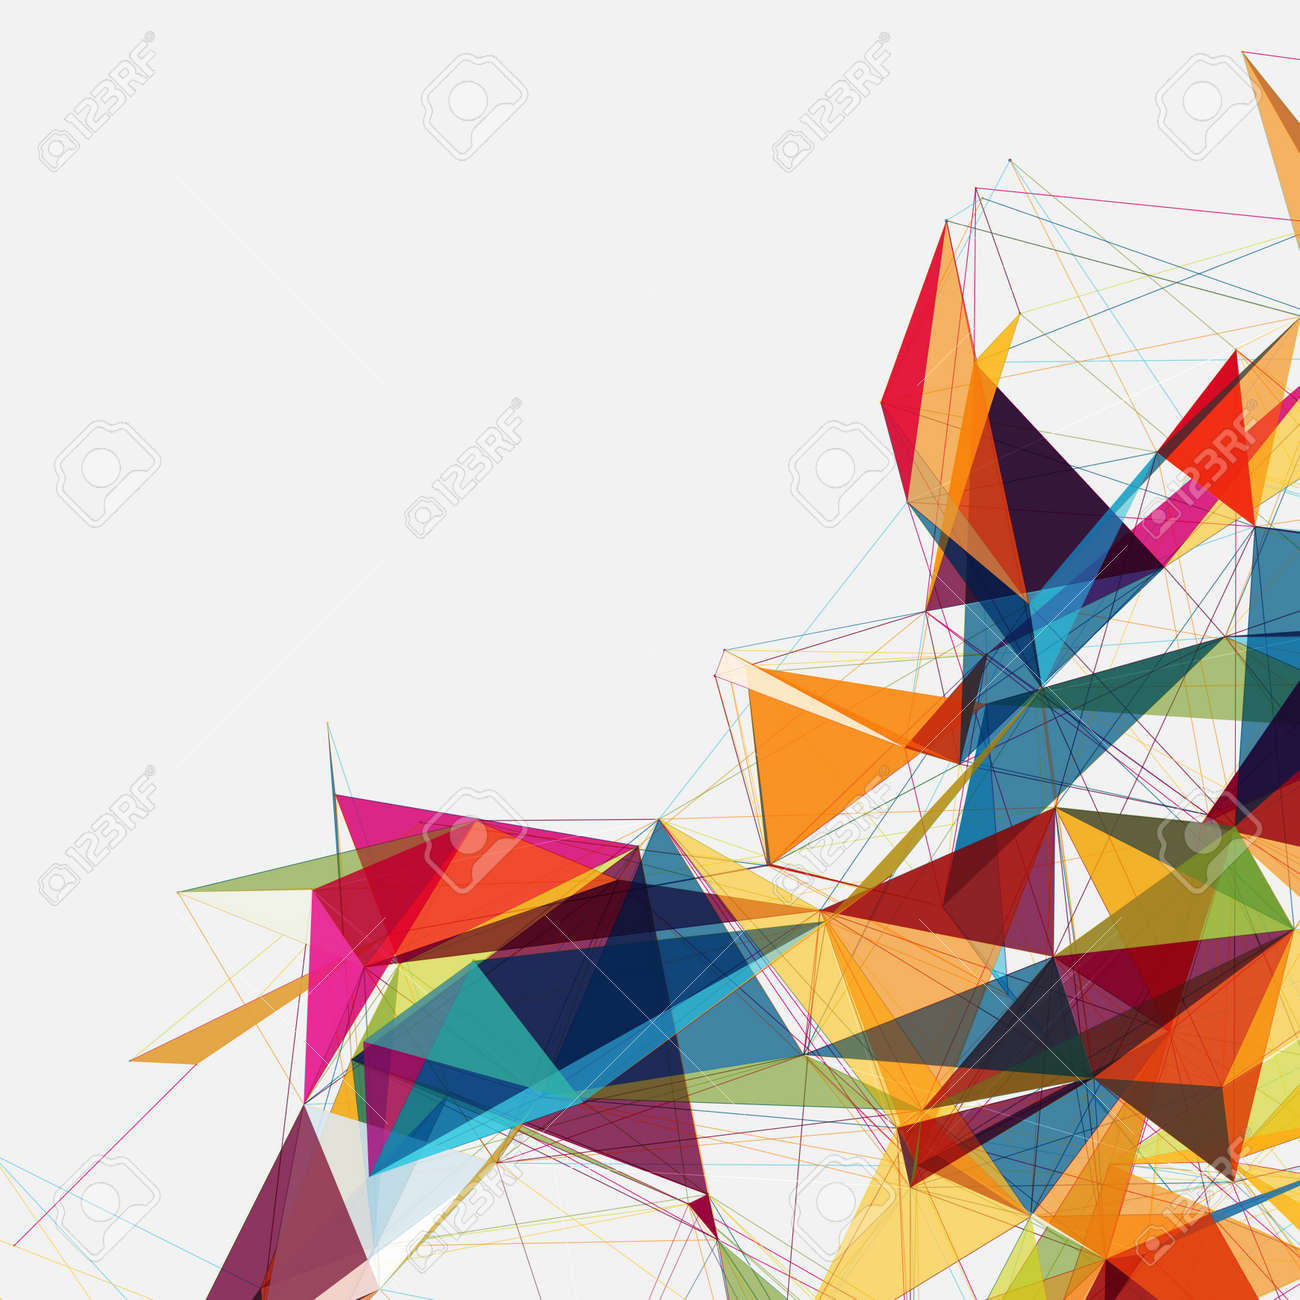 Abstract Shapes Background Eps10 Futuristic Design